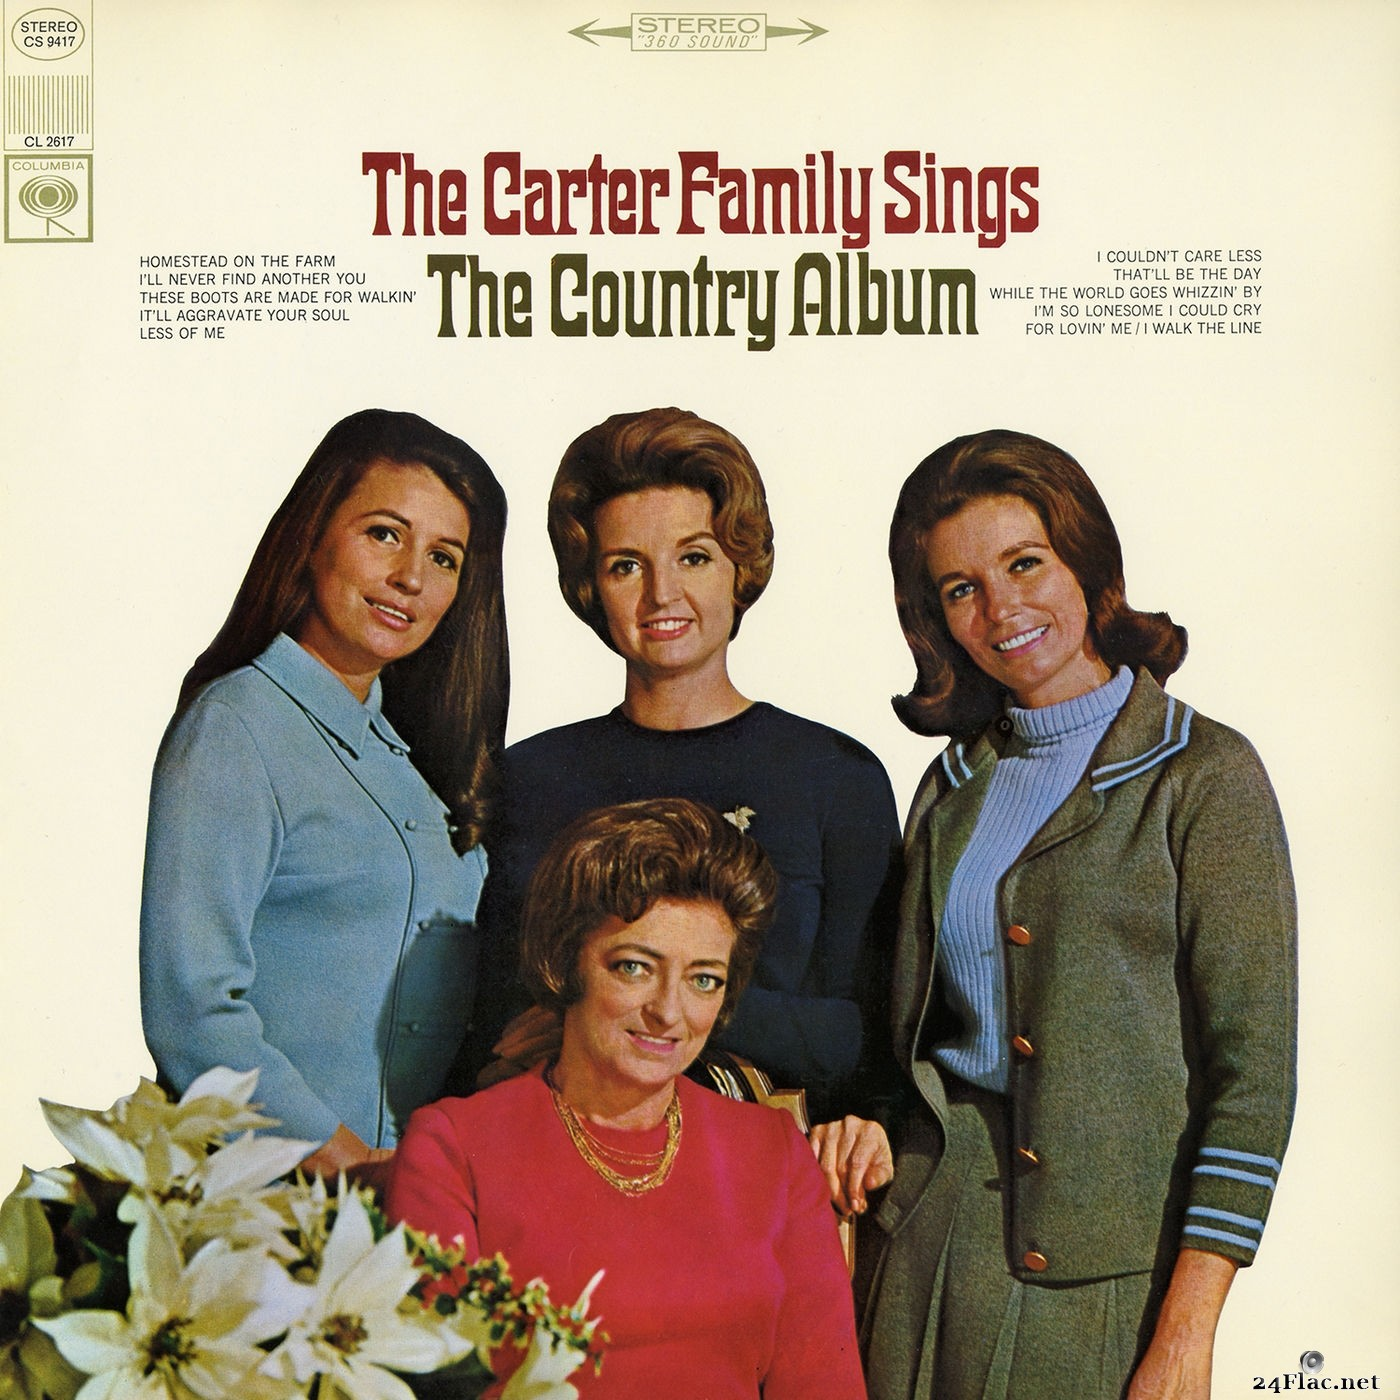 The Carter Family - The Carter Family Sings the Country Album (2017) Hi-Res